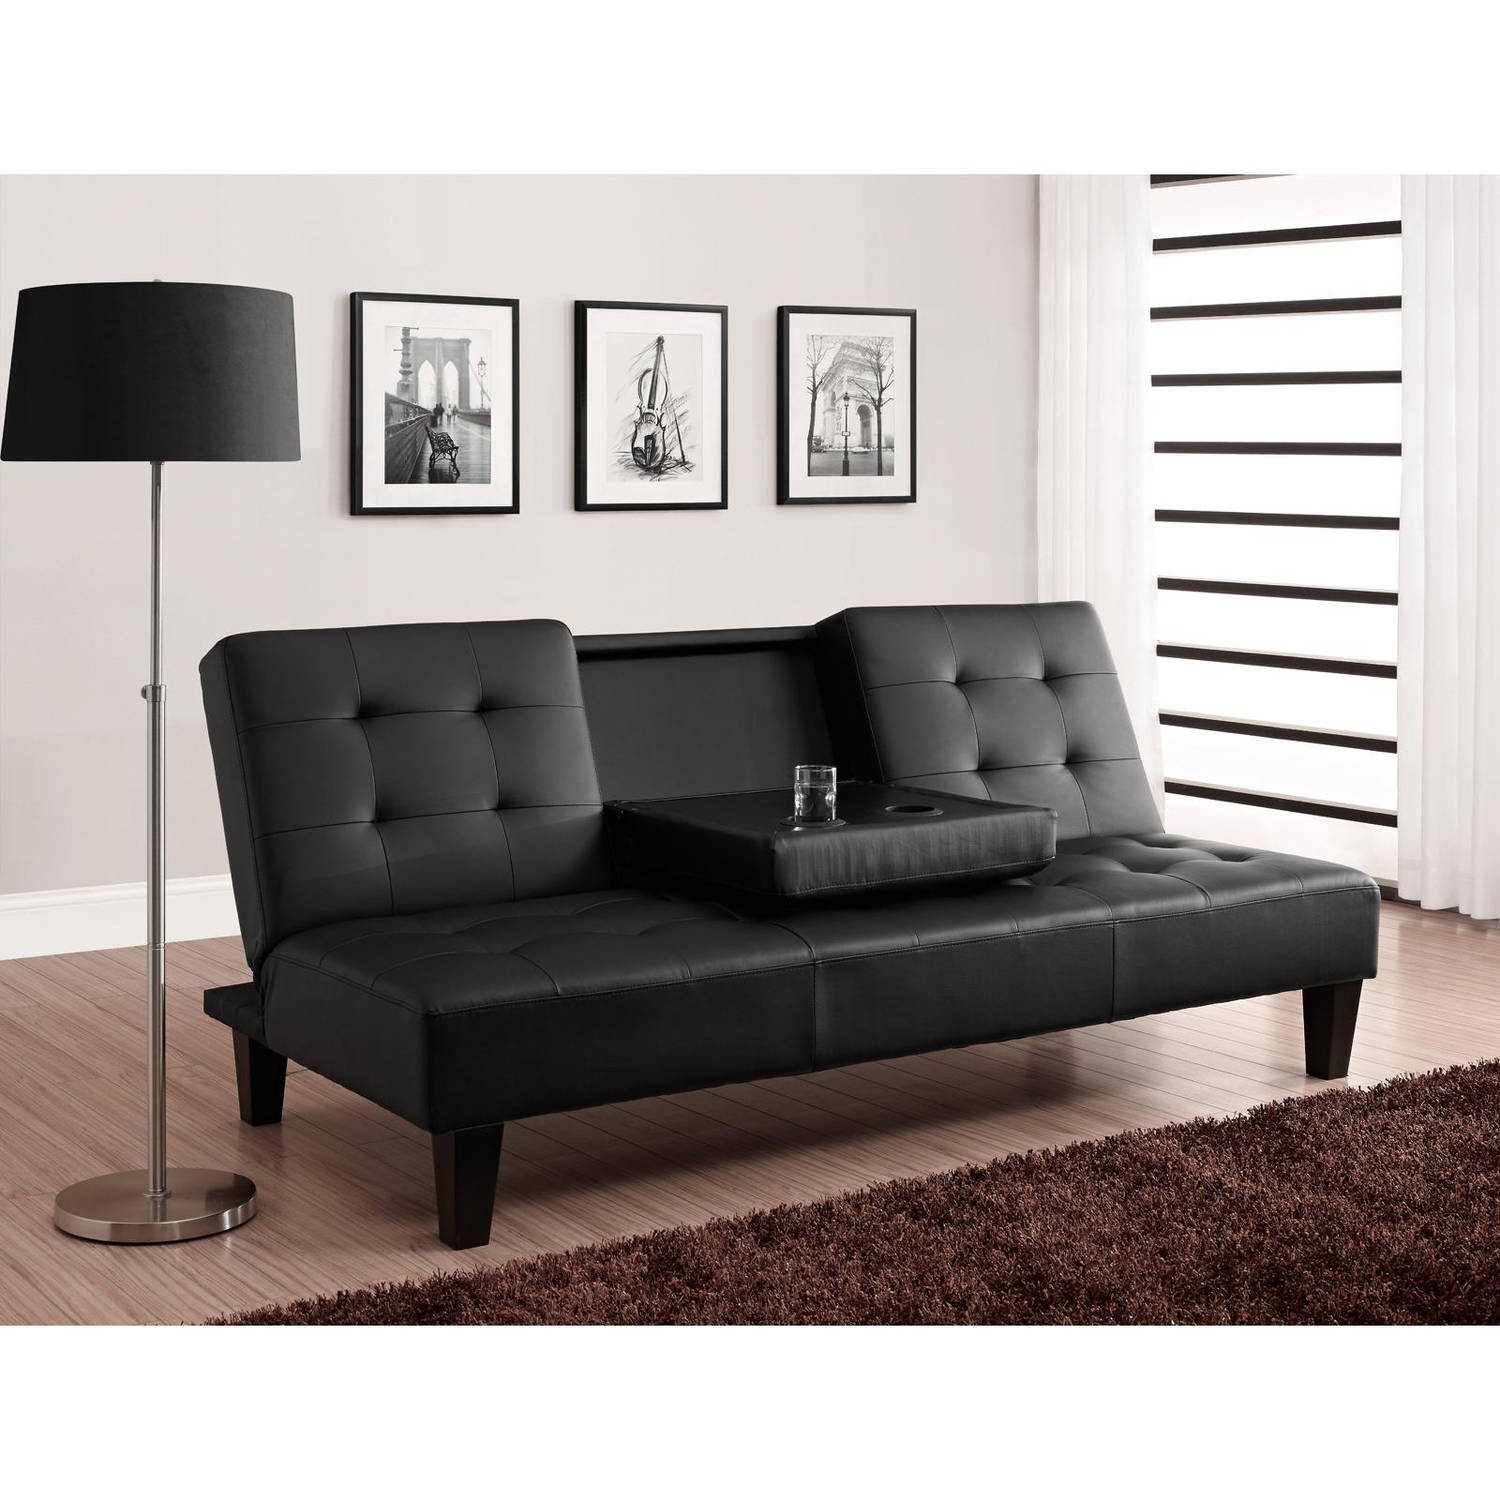 furniture zany living details sourceimage futon dhp previousnext products fre futons room